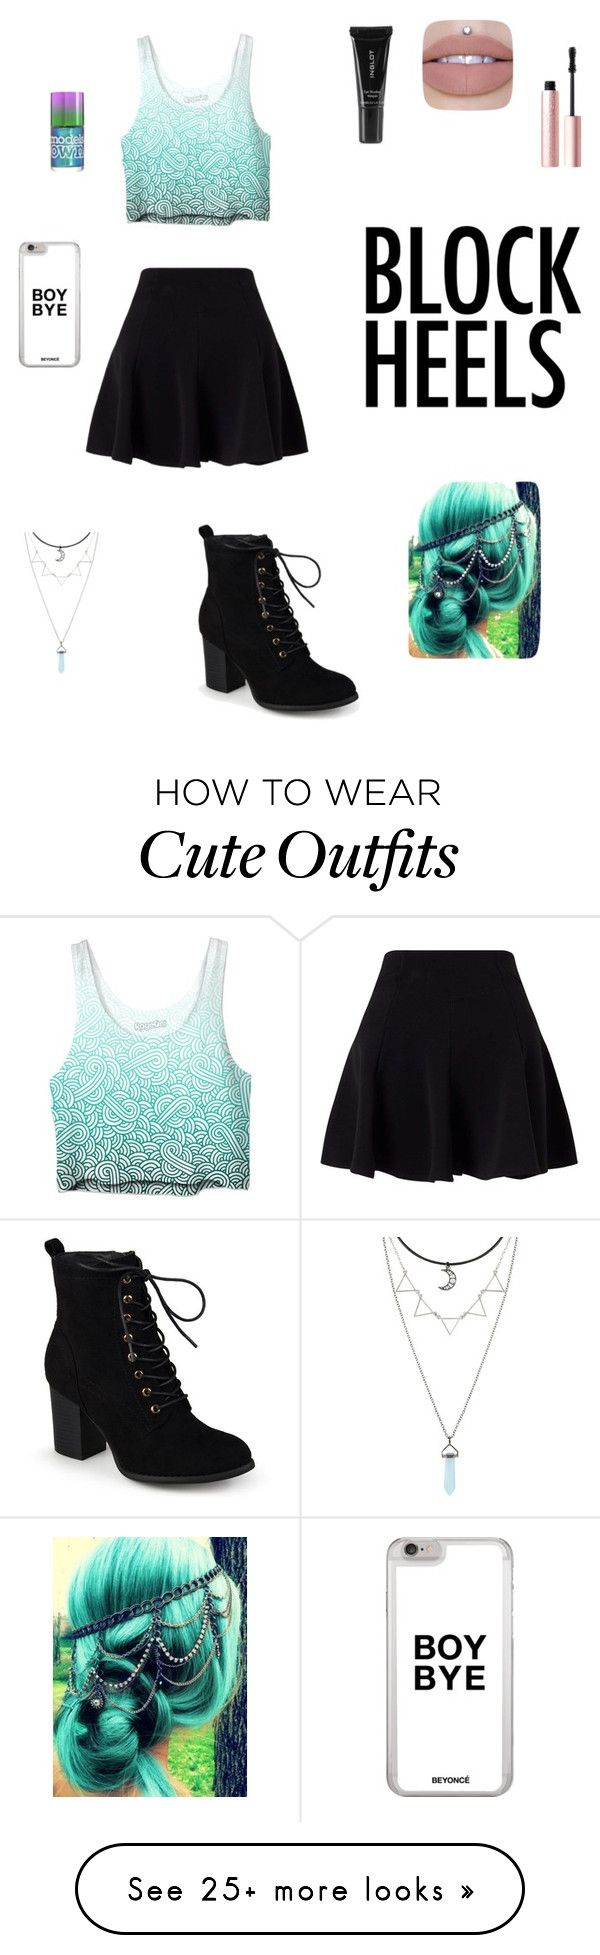 """Cute teen outfit ❤️"" by trinitylee306 on Polyvore featuring Journee Collection, Miss Selfridge, Hot Topic, Inglot and Too Faced Cosmetics"